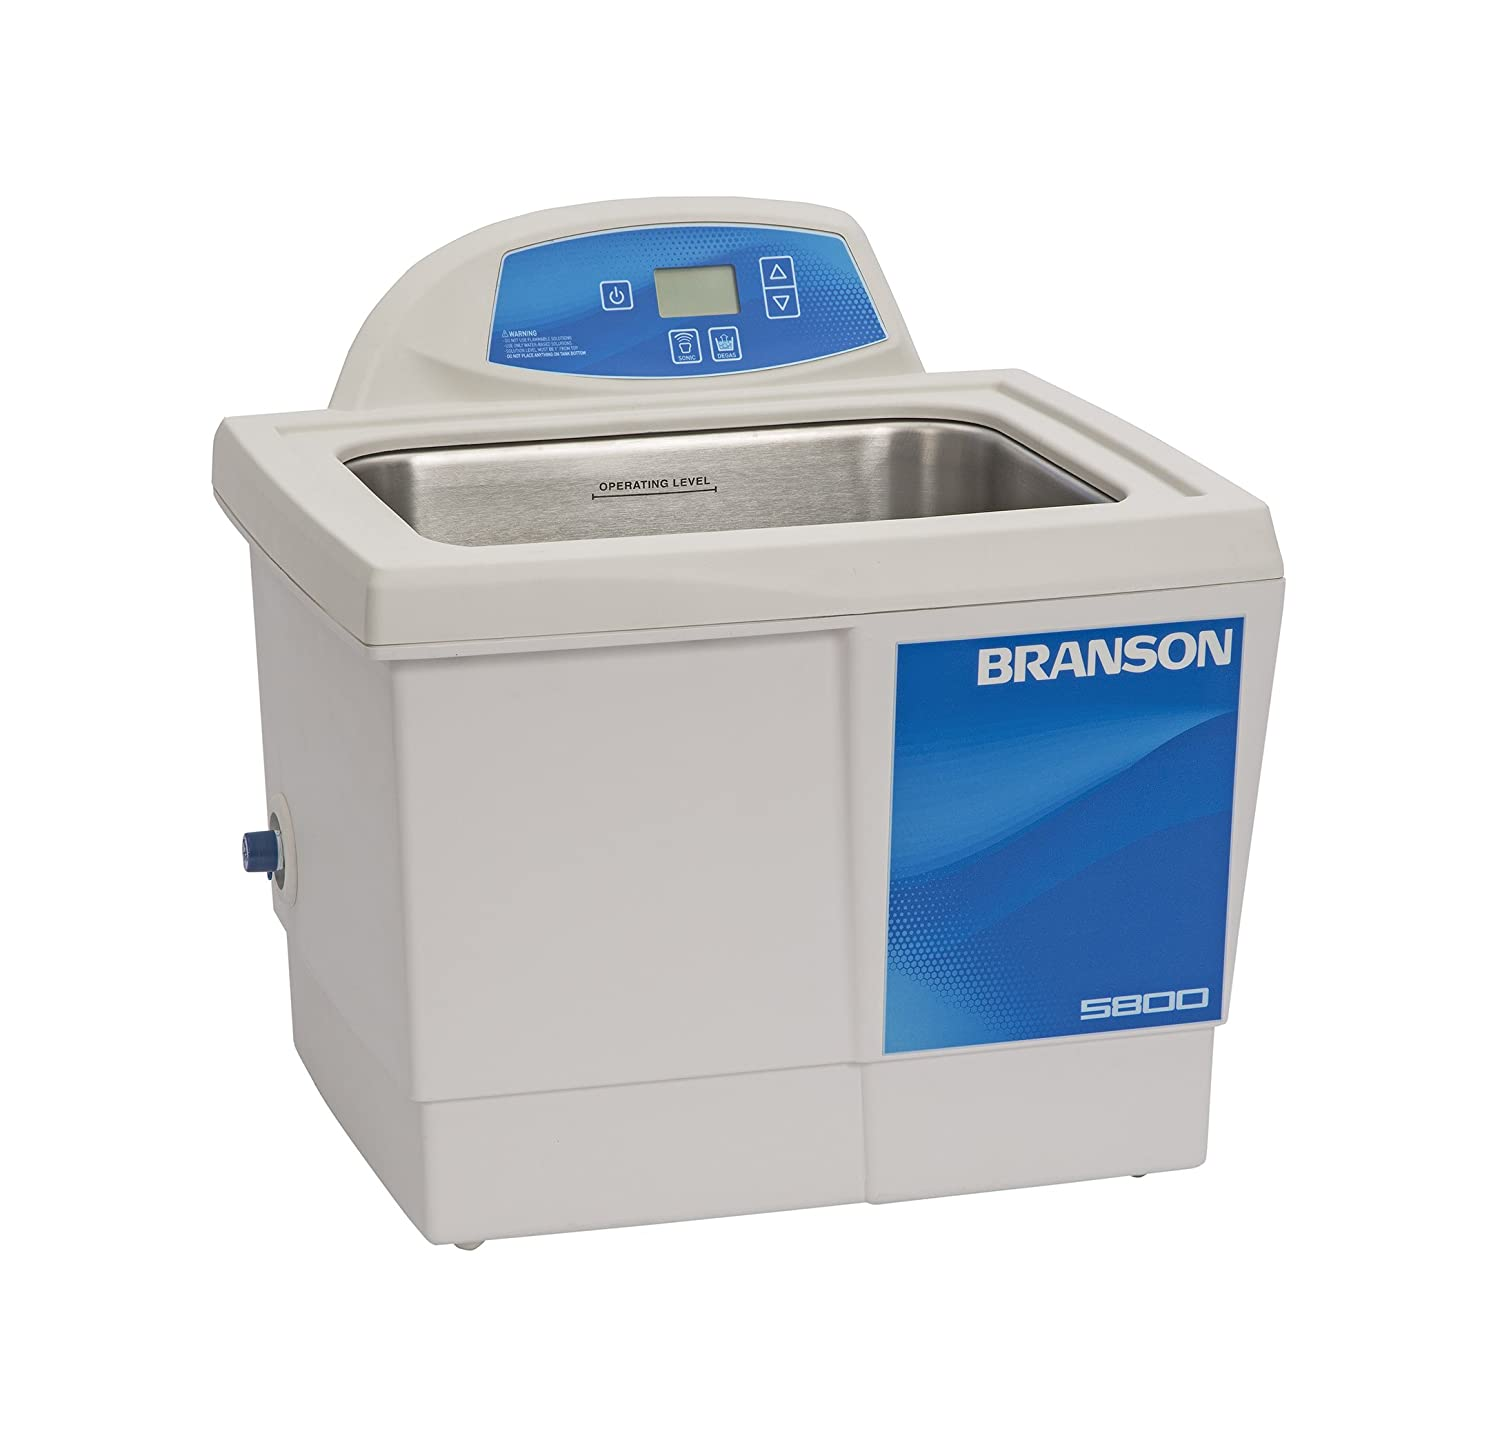 Branson CPX-952-518R Series CPXH Digital Cleaning Bath with Digital Timer and Heater, 2.5 Gallons Capacity, 120V